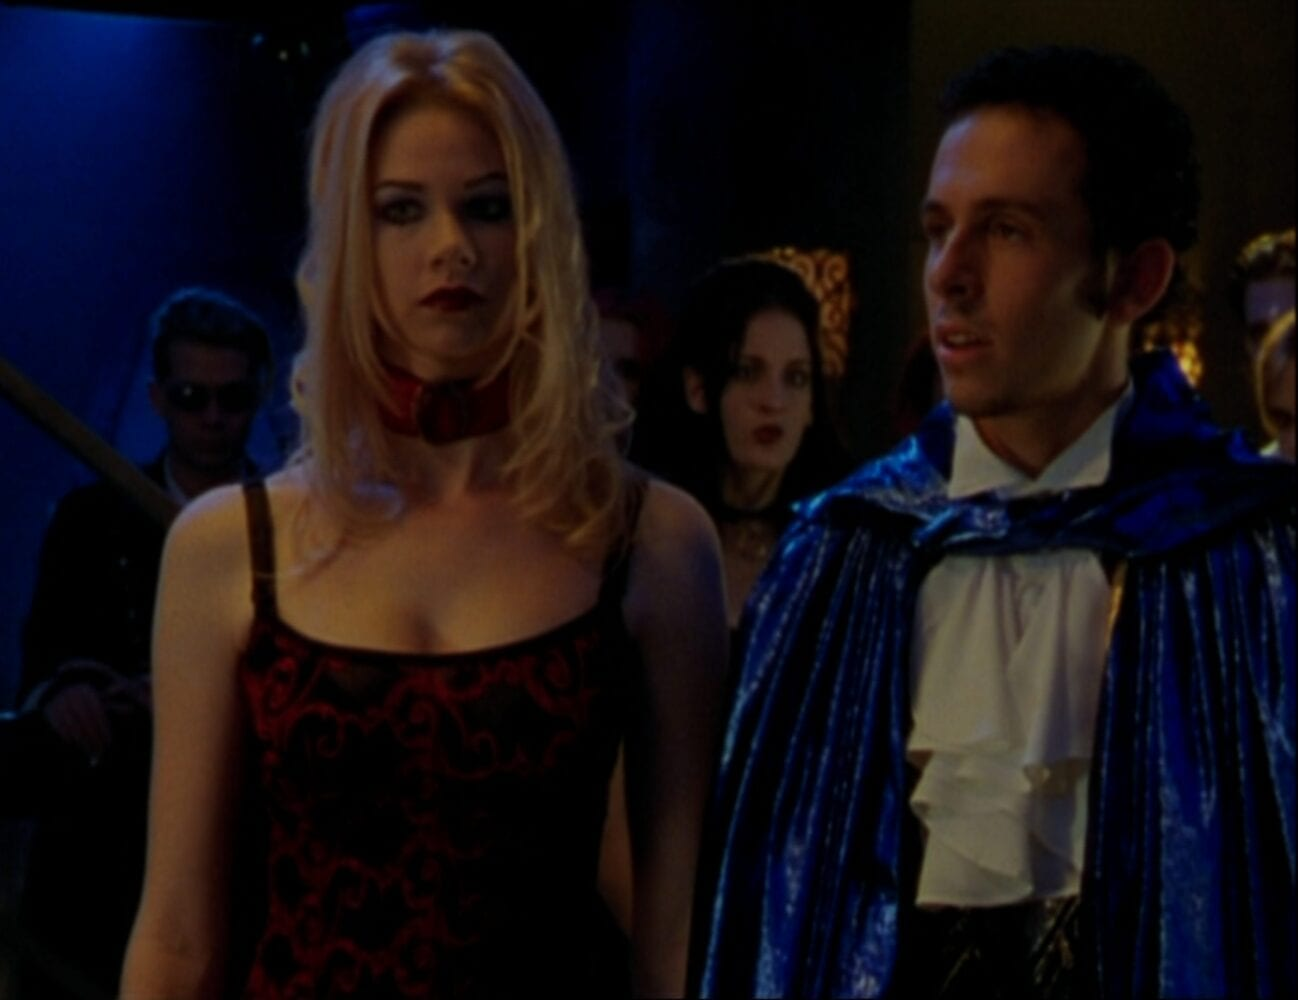 Wearing a dark red dress and a choker, Chanterelle stands in the club with Diego, who wears a ruffled shirt and blue cape, and the rest of the vampire cult, also dressed in vampire attire